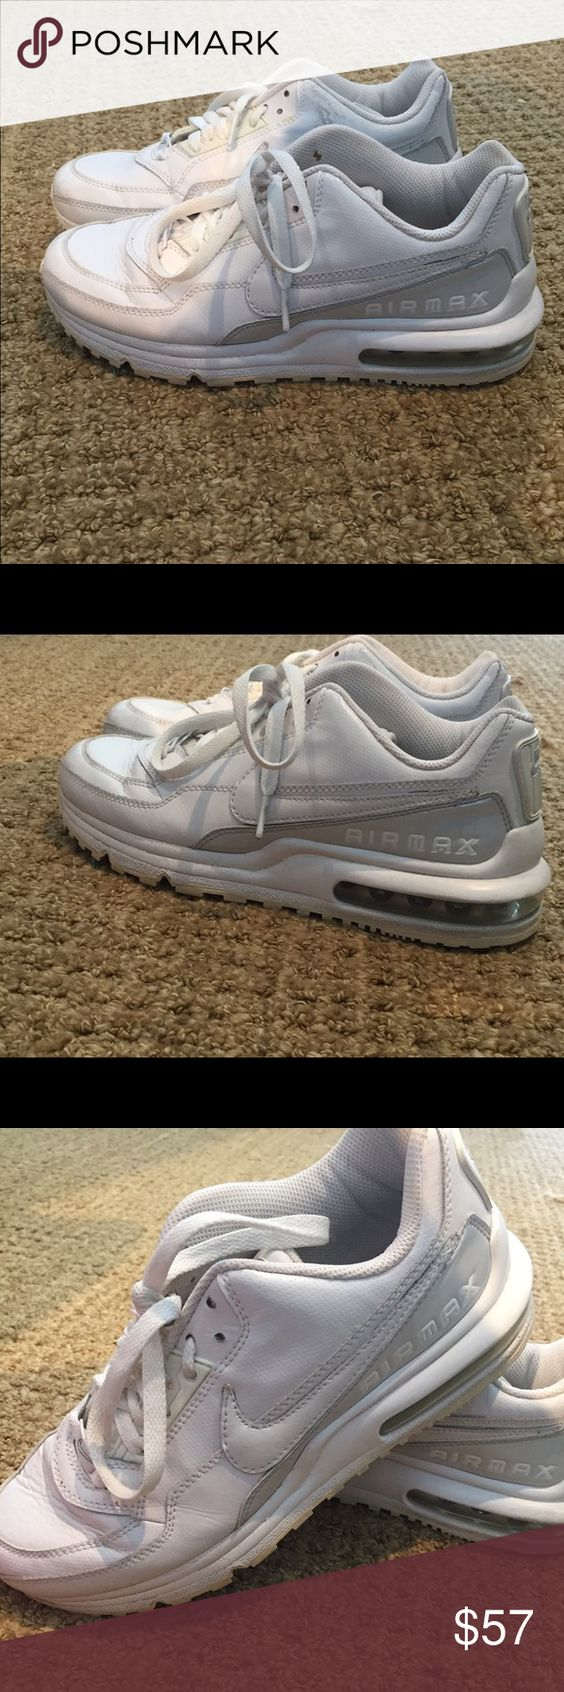 Nike Air Max Sneaker White Size 6Y Women's 7 - 7.5 Nike Air Max sneakers - white. Size 6 youth which is also about a 7.5 in women's and can fit a 7 too. Pre owned Nike Shoes Sneakers